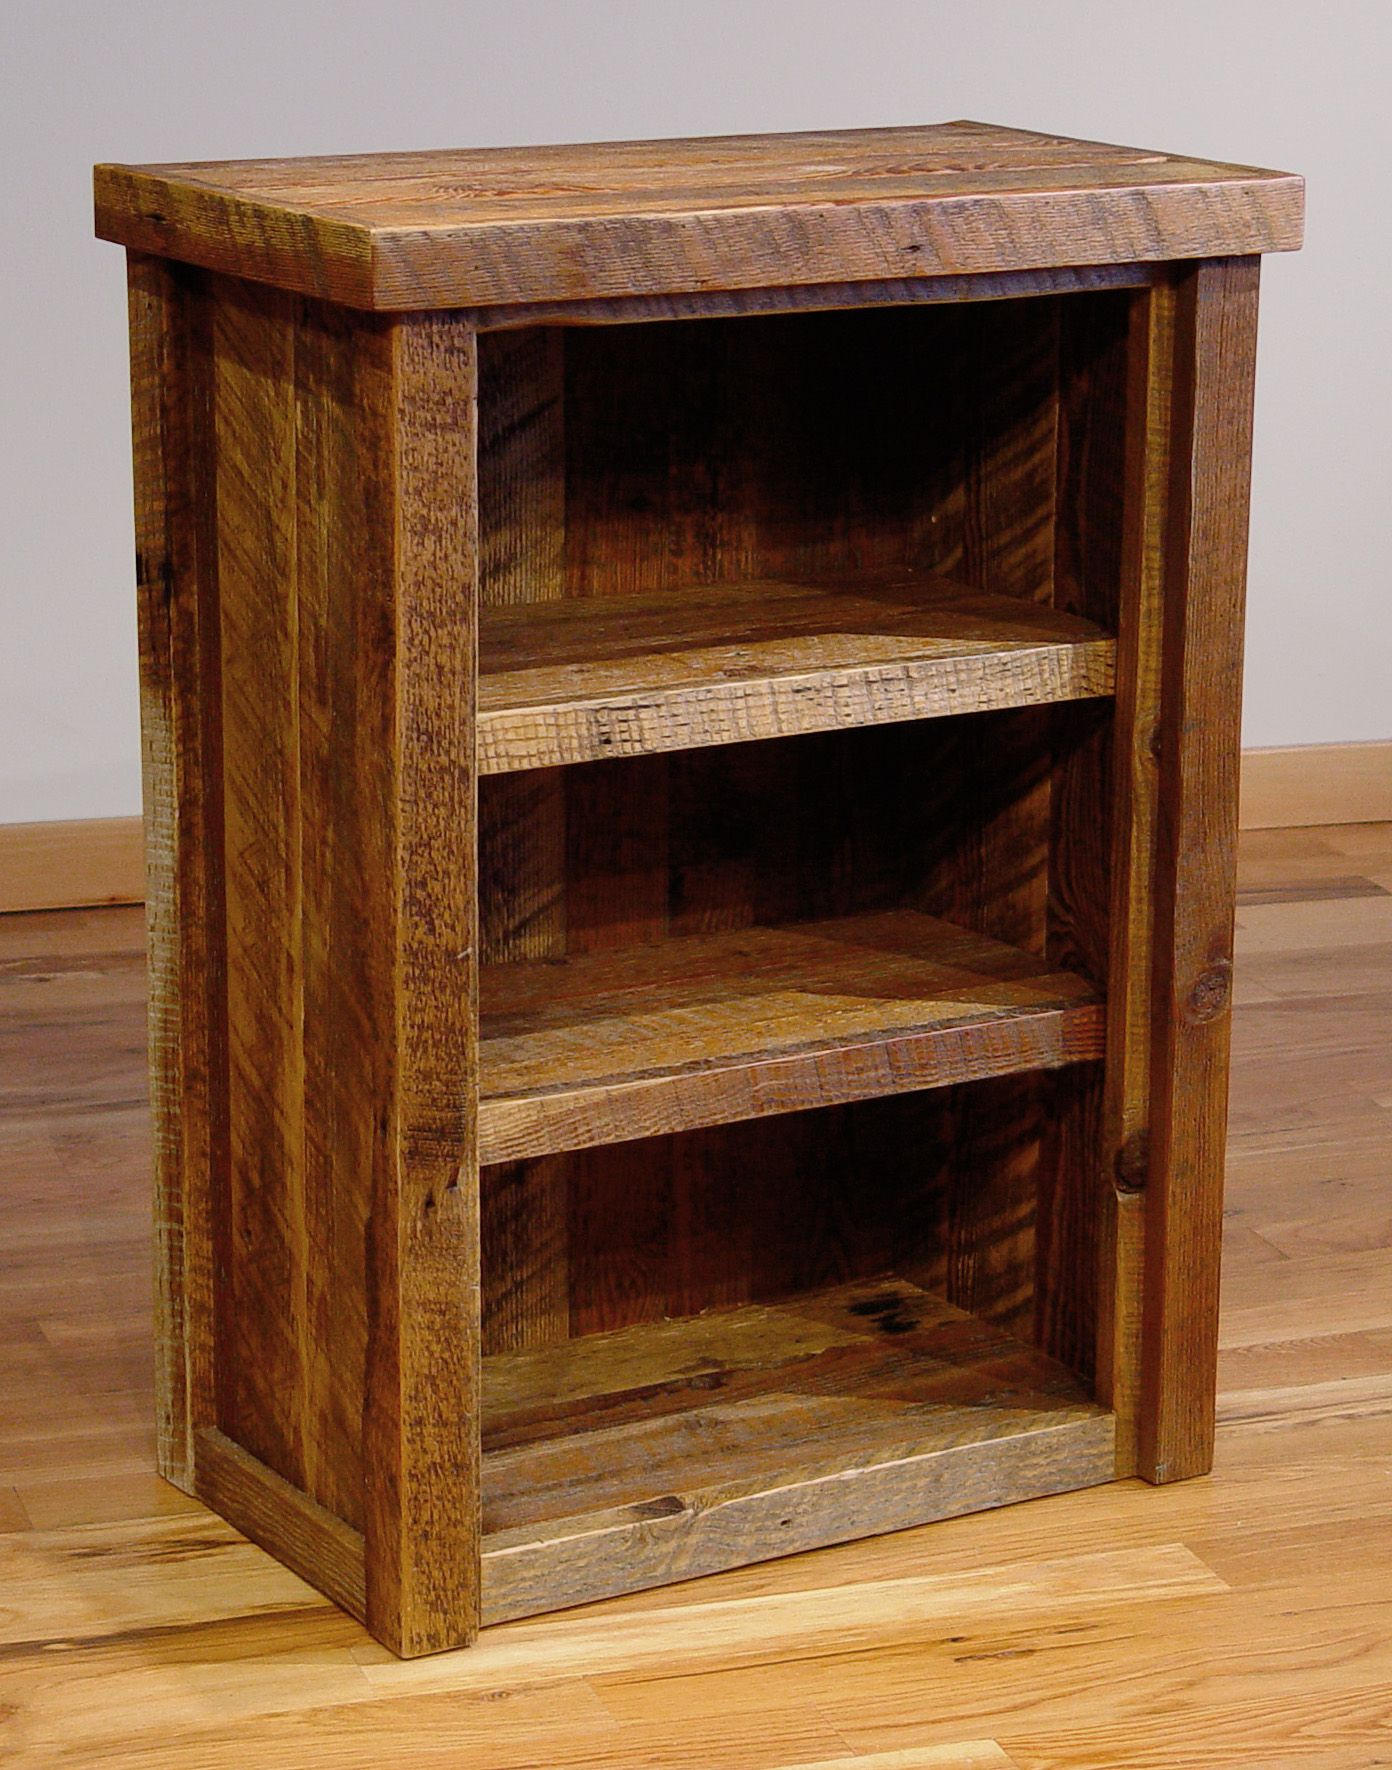 reclaimed barn wood rustic heritage bookcase small mobilier ou oeuvre d 39 art pinterest. Black Bedroom Furniture Sets. Home Design Ideas